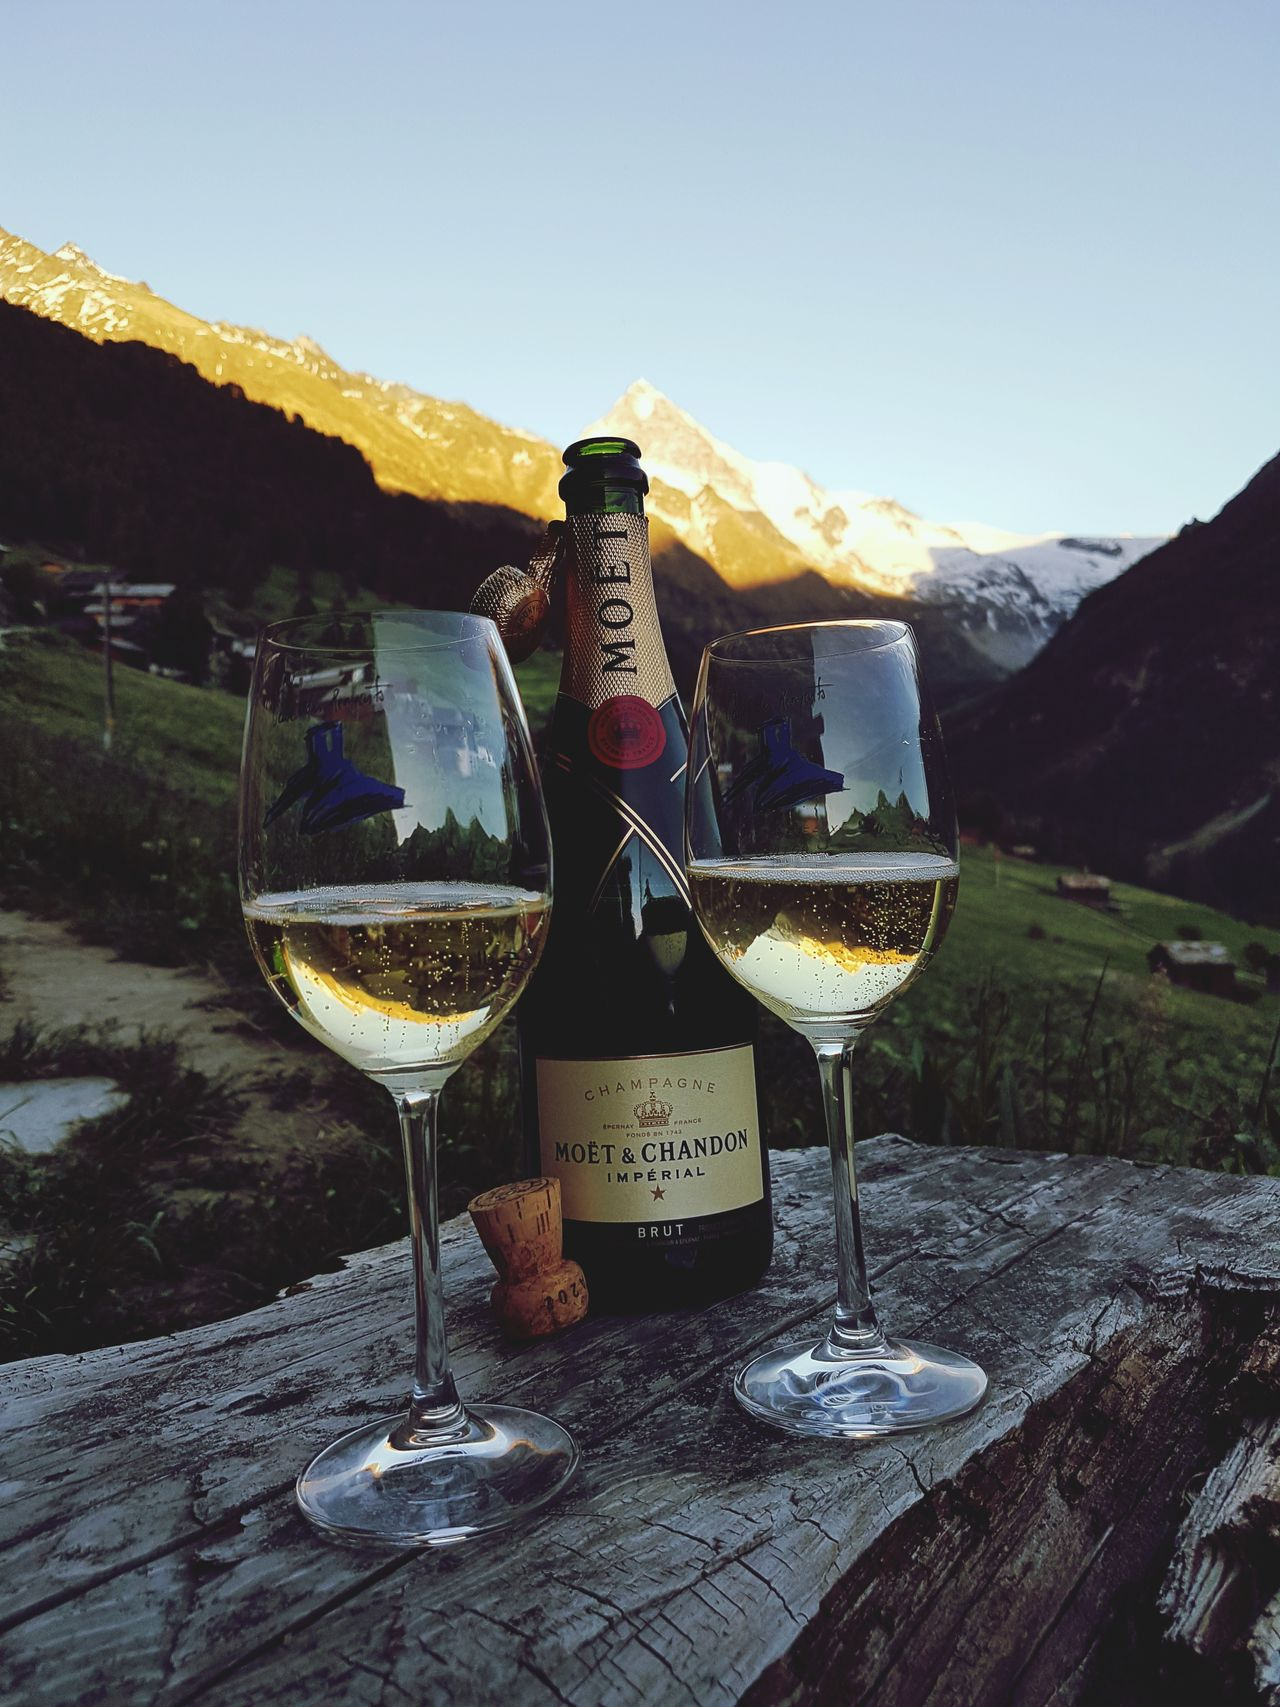 Happy birthday! Alcohol Drink Champagne Champagne Flute Celebration Mountain Drinking Bottle Champagne Outdoors Bottle Holiday Food And Drink Wine Cork Moet & Chandon Champagne Brut